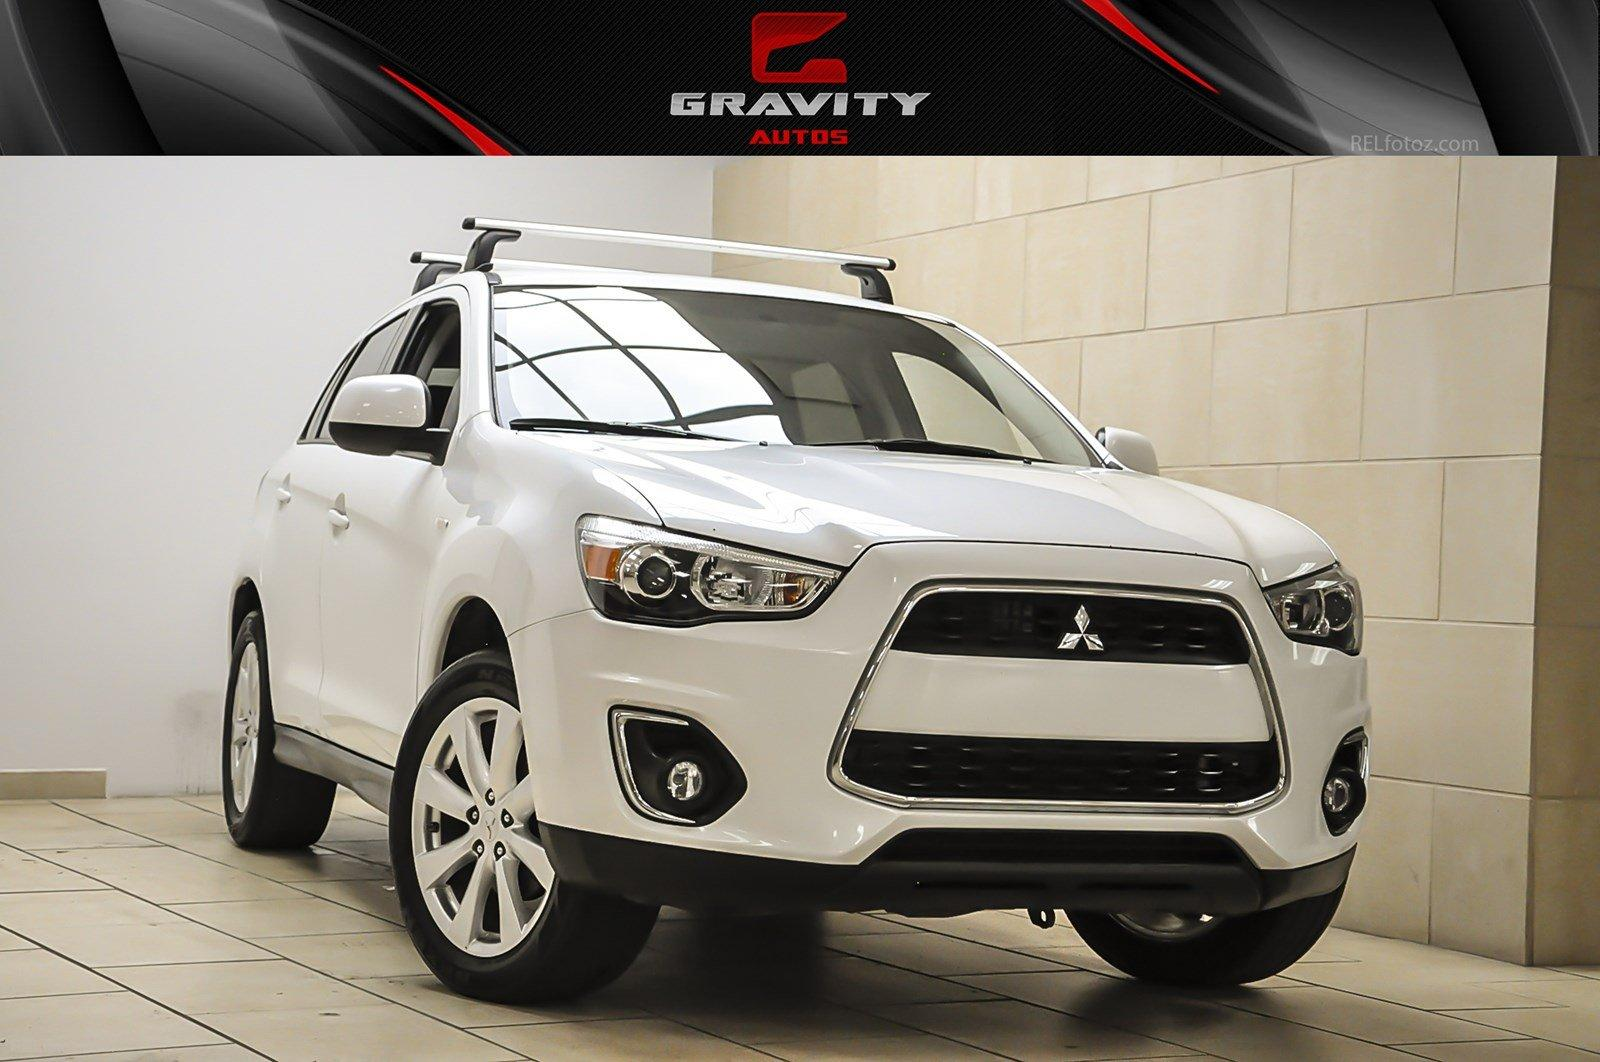 2014 mitsubishi outlander sport es stock 021296 for sale near rh gravityautossandysprings com 2015 mitsubishi outlander sport service manual 2014 mitsubishi outlander sport es owners manual